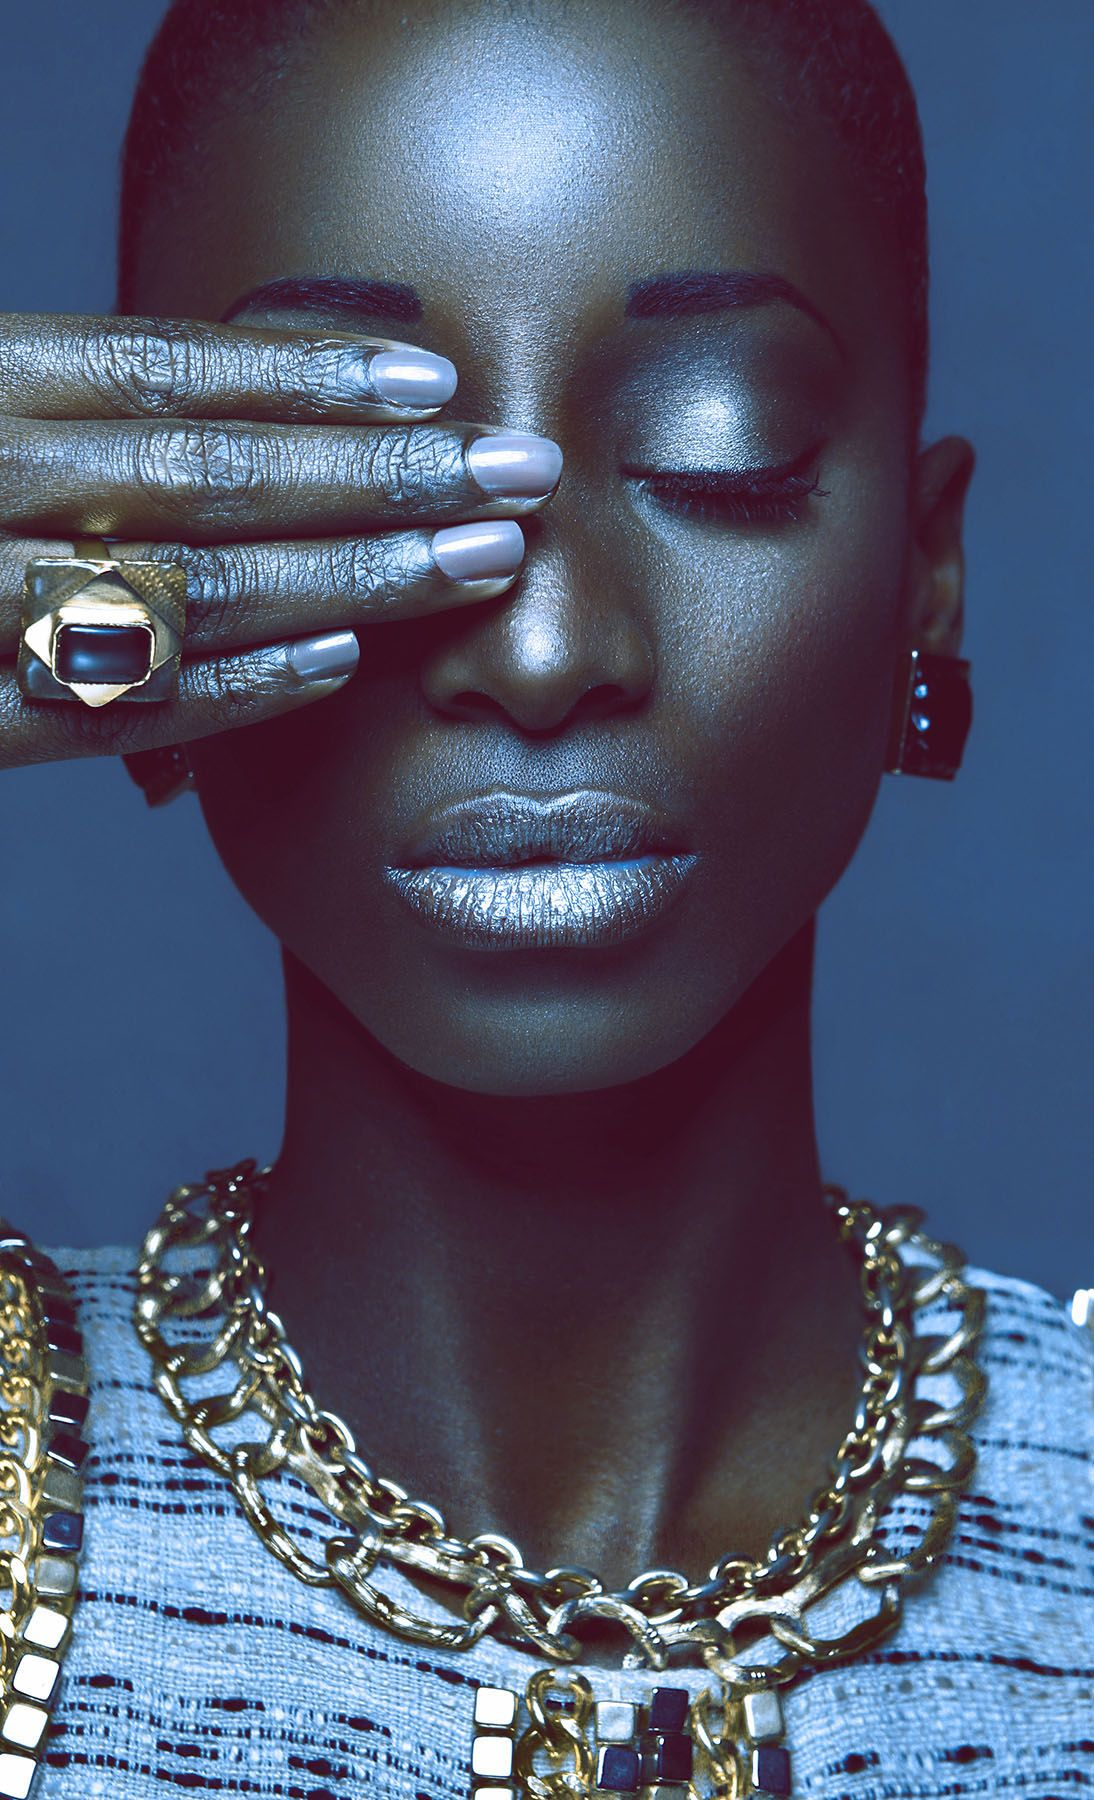 Beauté Noire by the Cameroonian Photographer Orphee